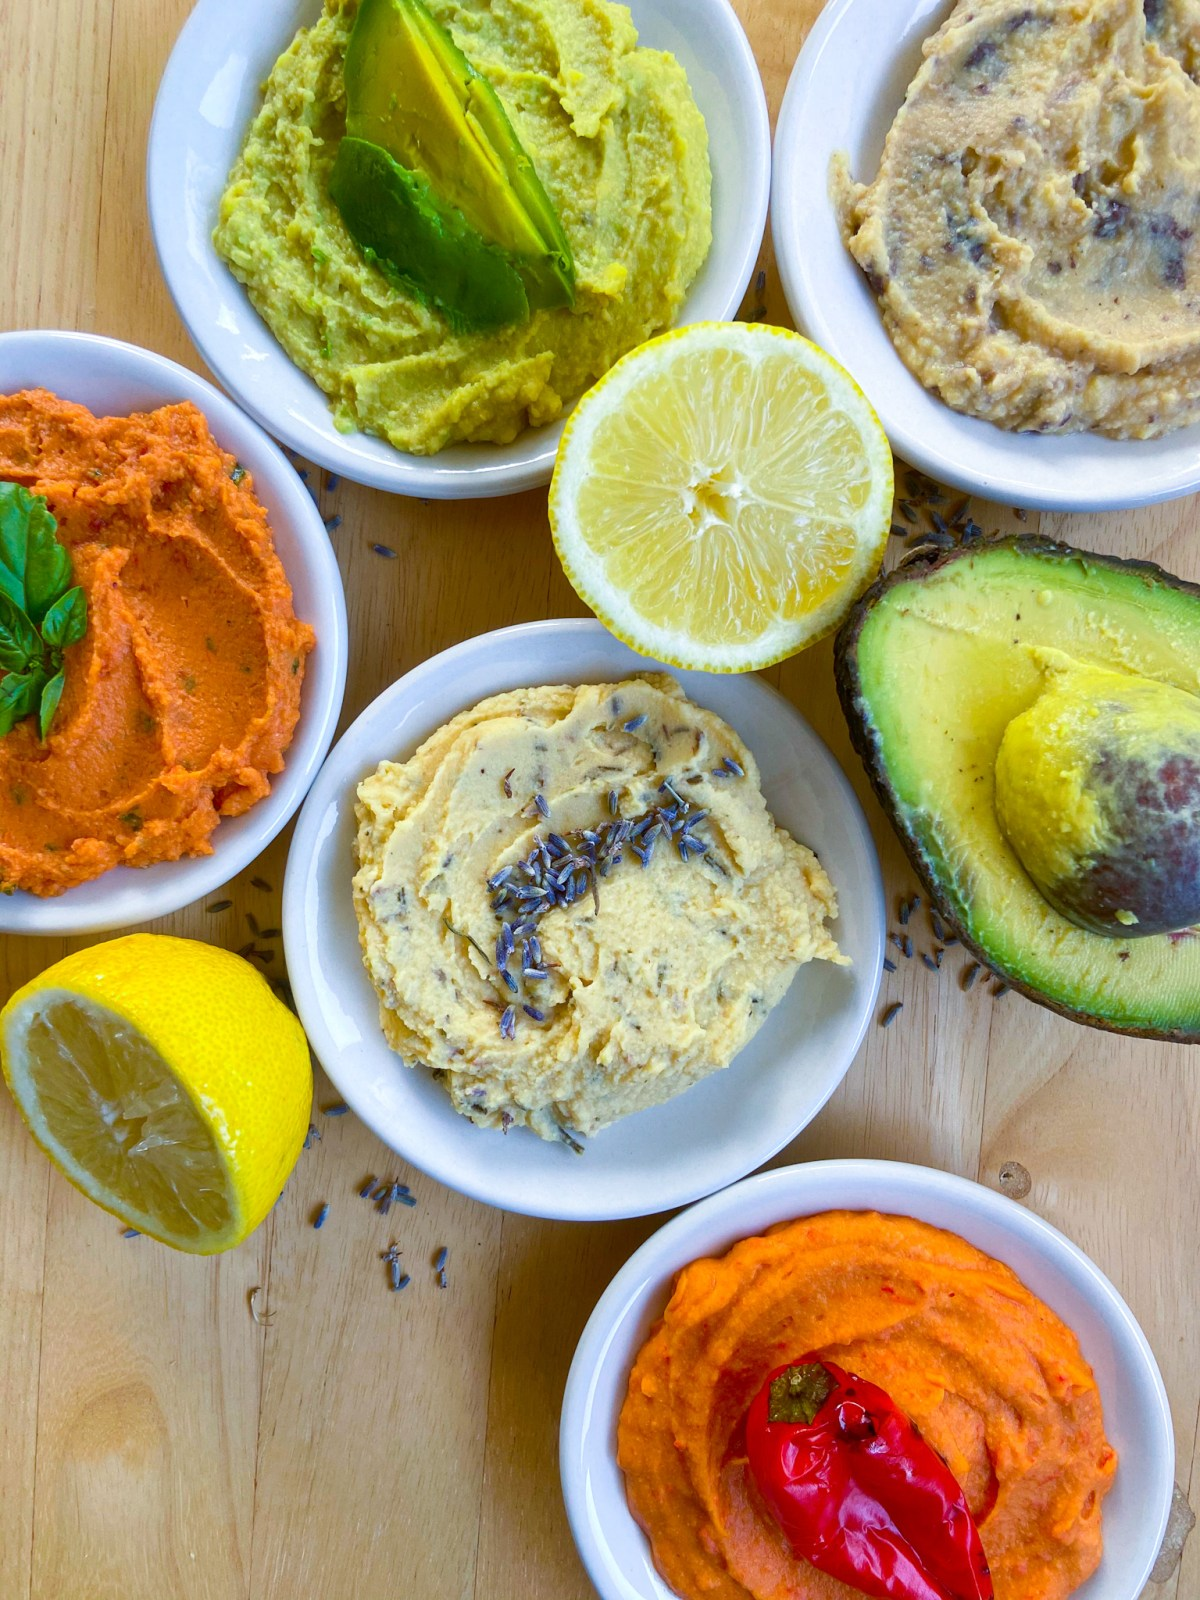 How to make hummus 5 different ways